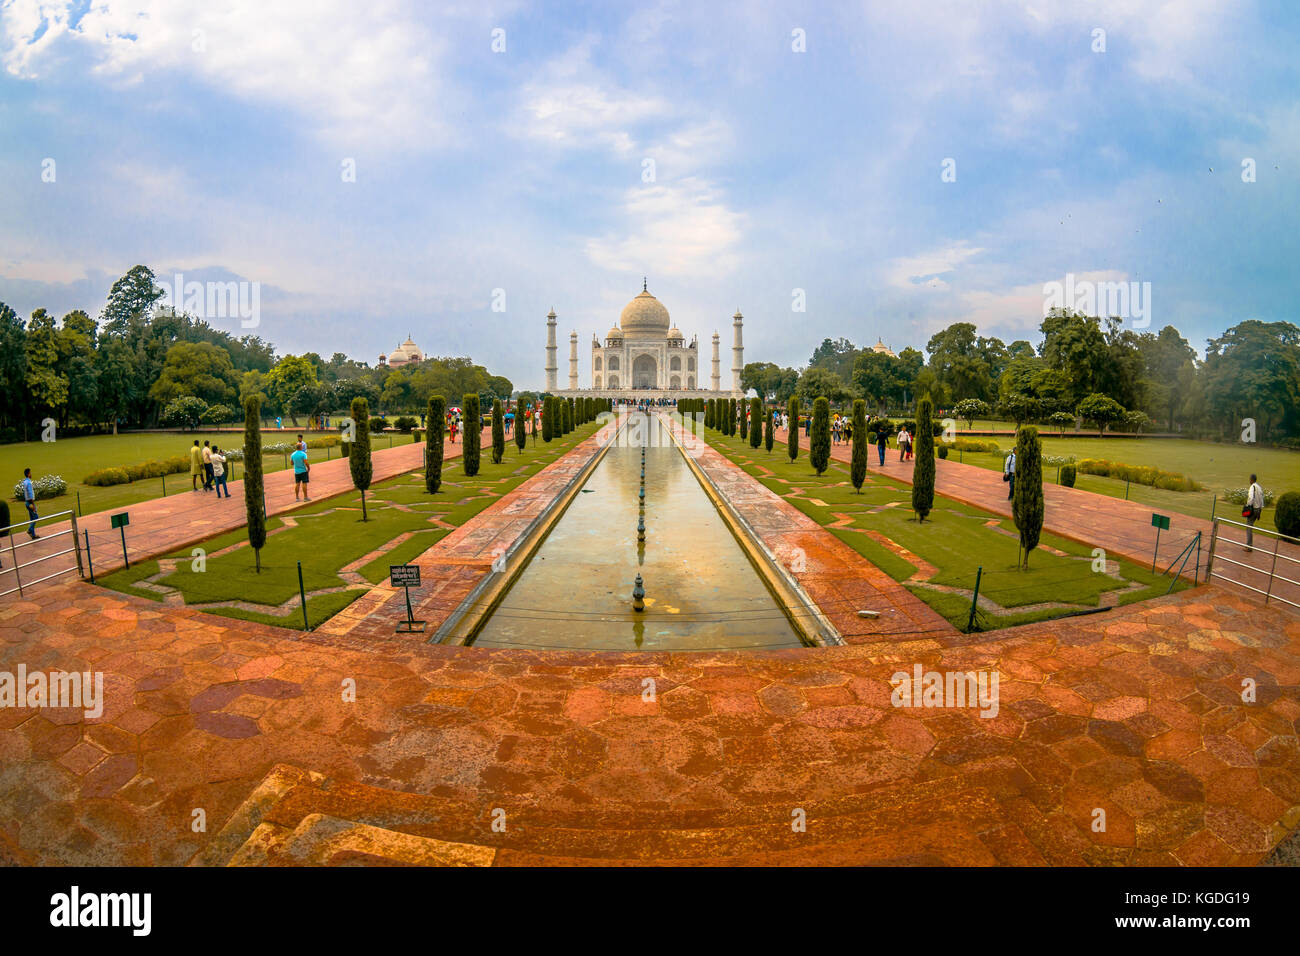 Agra, India - September 20, 2017: Unidentified people walking and taking pictures of the beautiful Taj Mahal, is - Stock Image